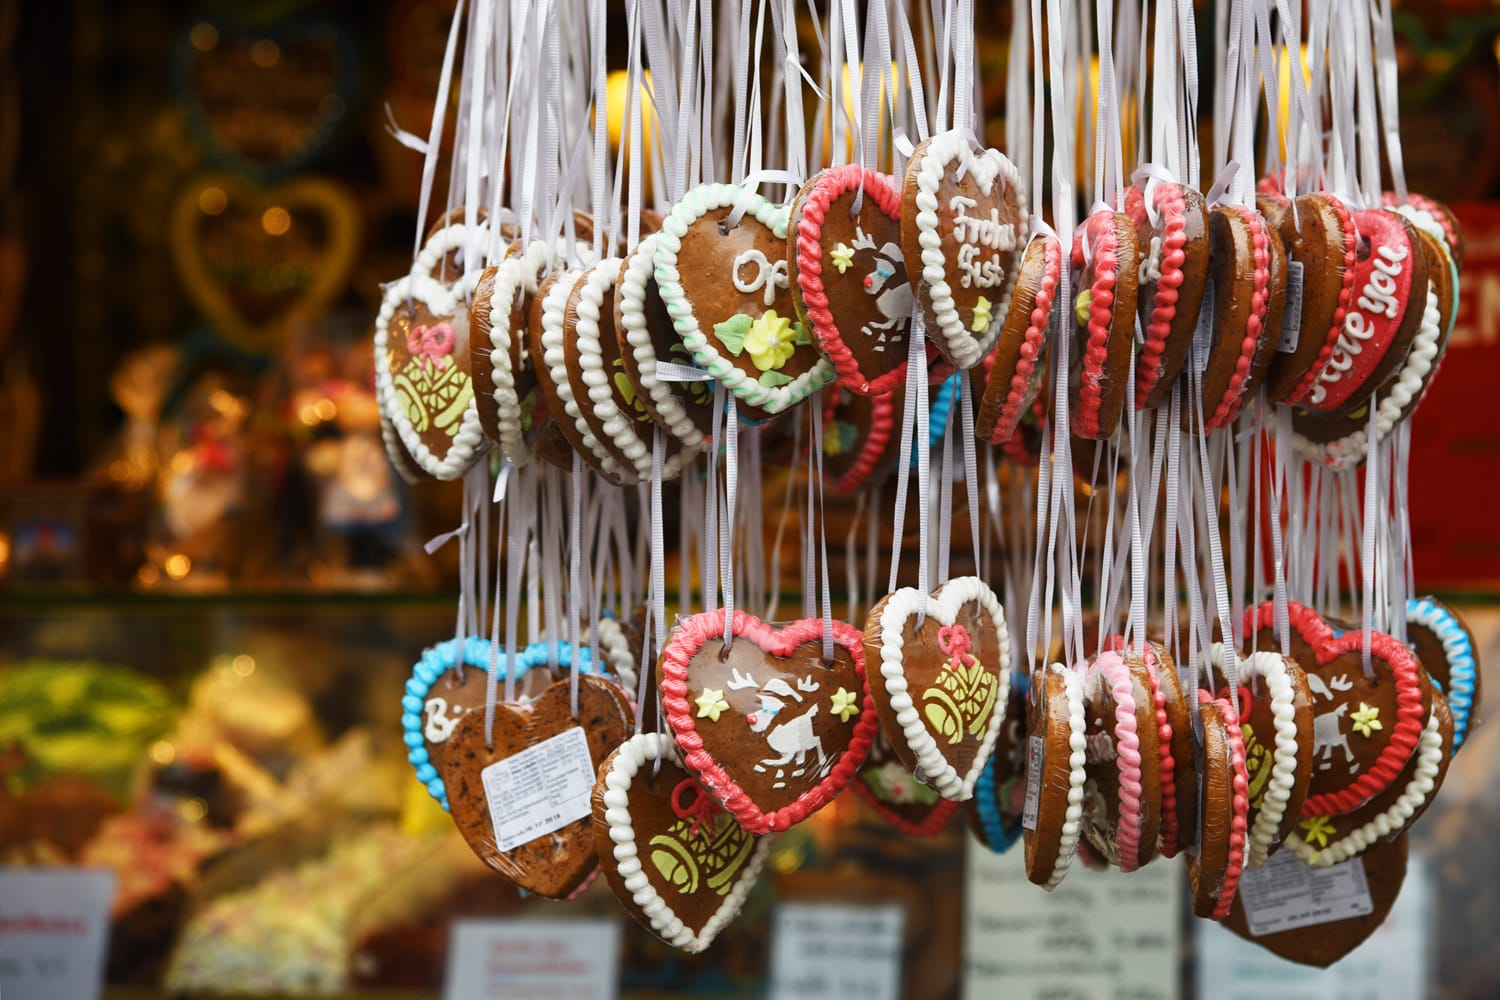 Gingerbread hearts sold at a Christmas market in Germany